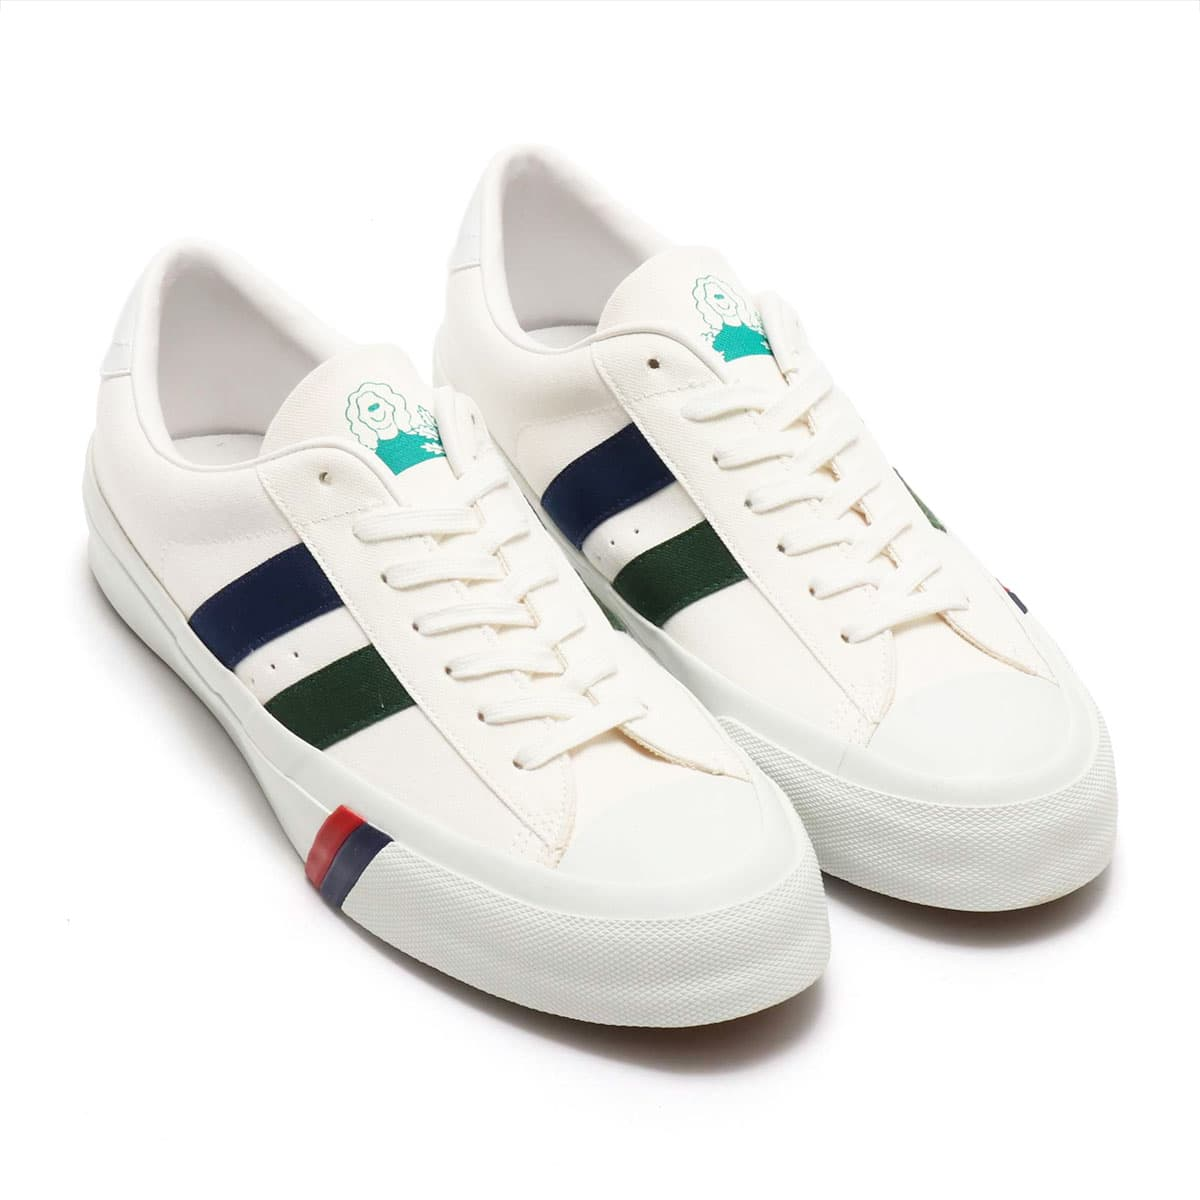 PRO-Keds CLASSIC ROYAL PLUS atmos x FACE WHITE 19SS-S_photo_large